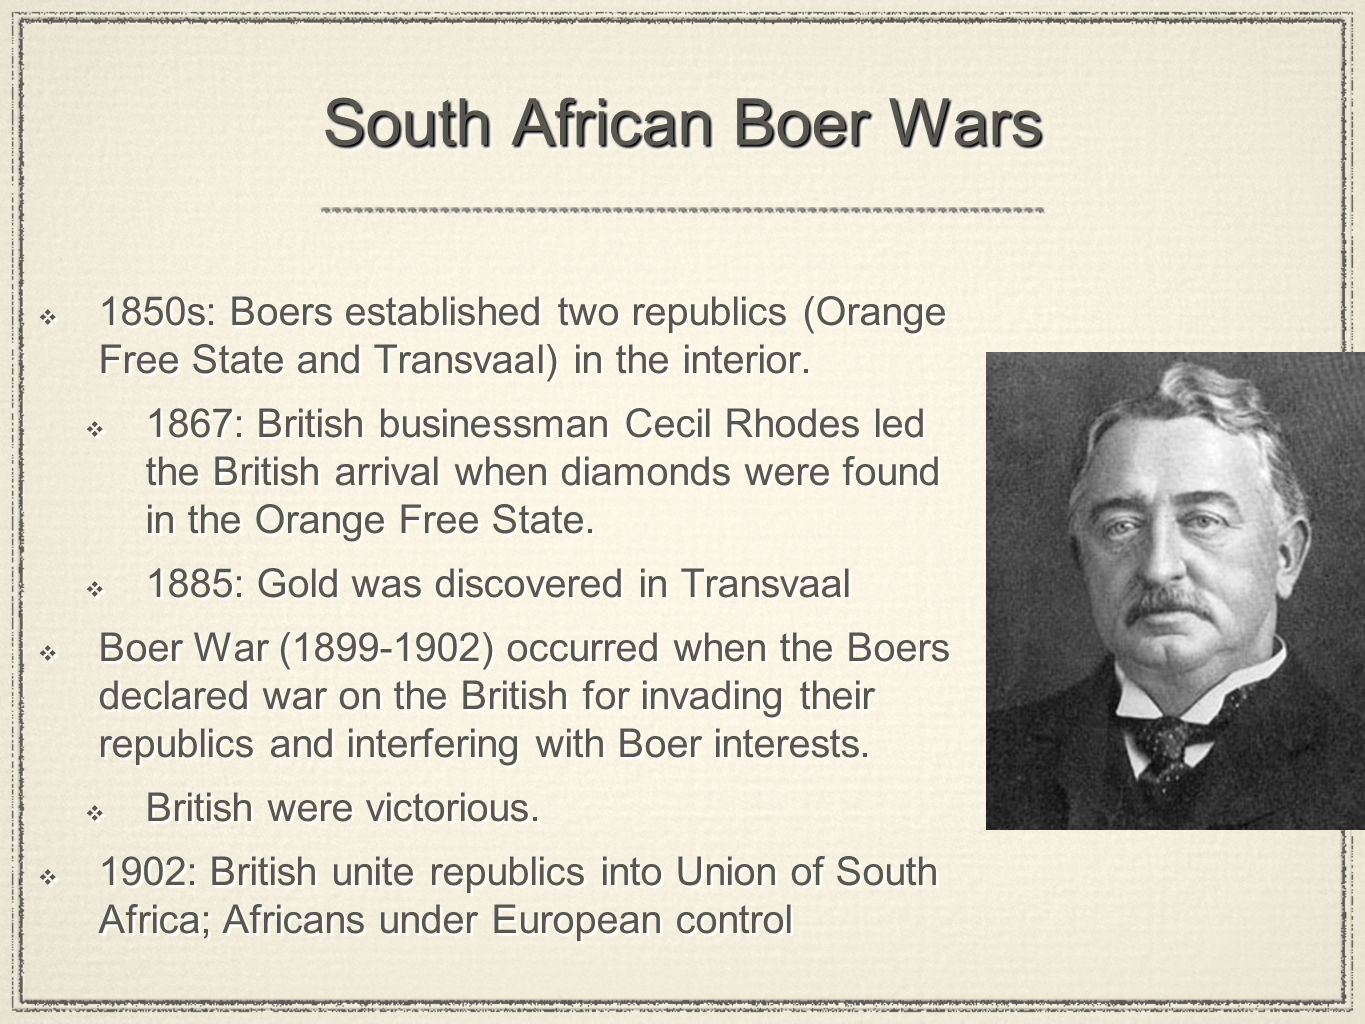 South African Boer Wars 1850s: Boers established two republics (Orange Free State and Transvaal) in the interior. 1867: British businessman Cecil Rhod